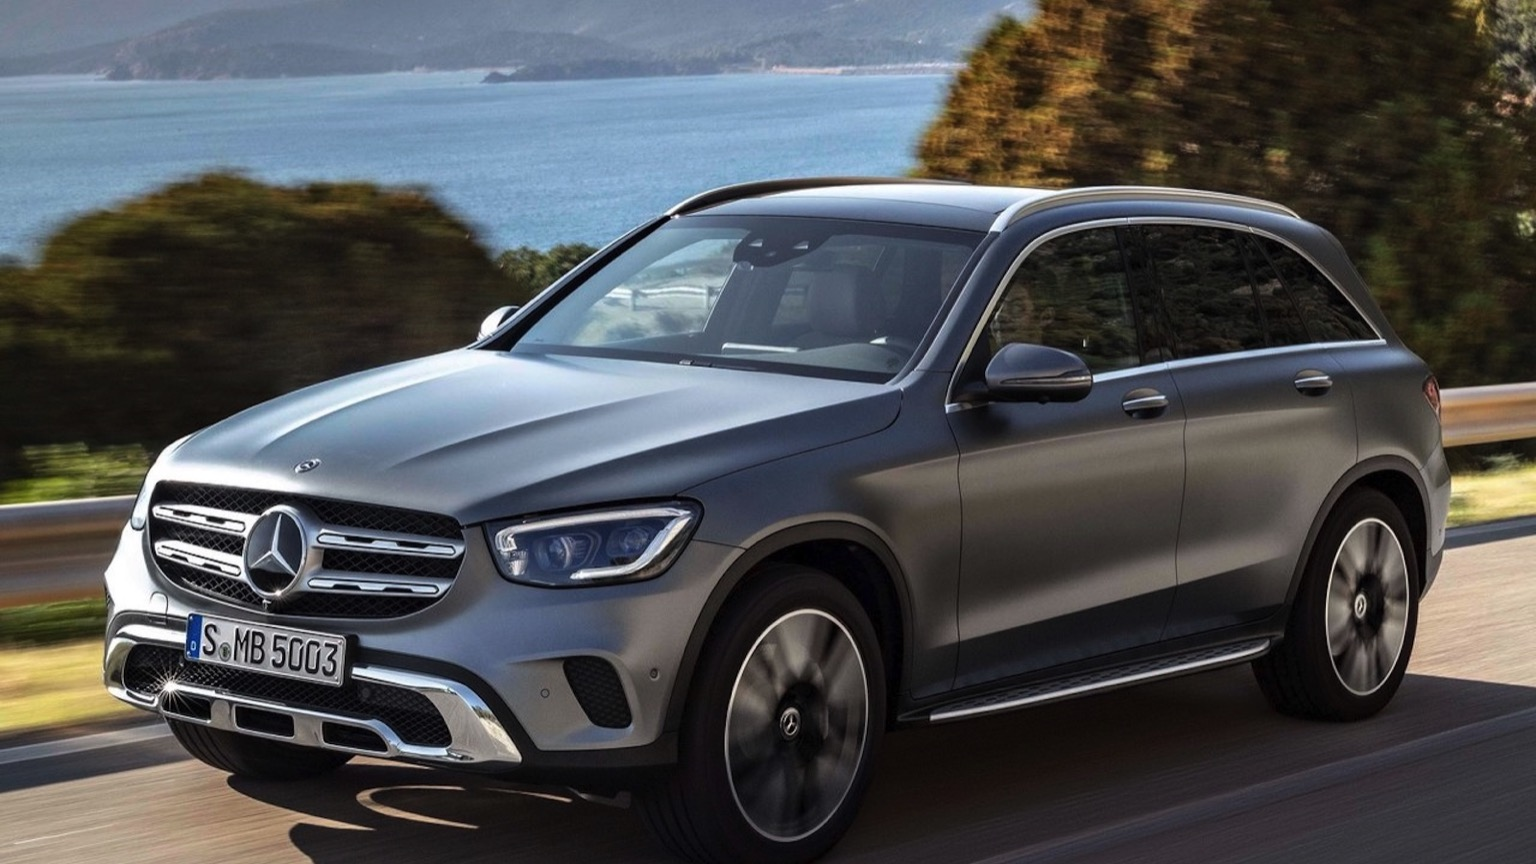 Mercedes GLC 350 e 4MATIC (2016)